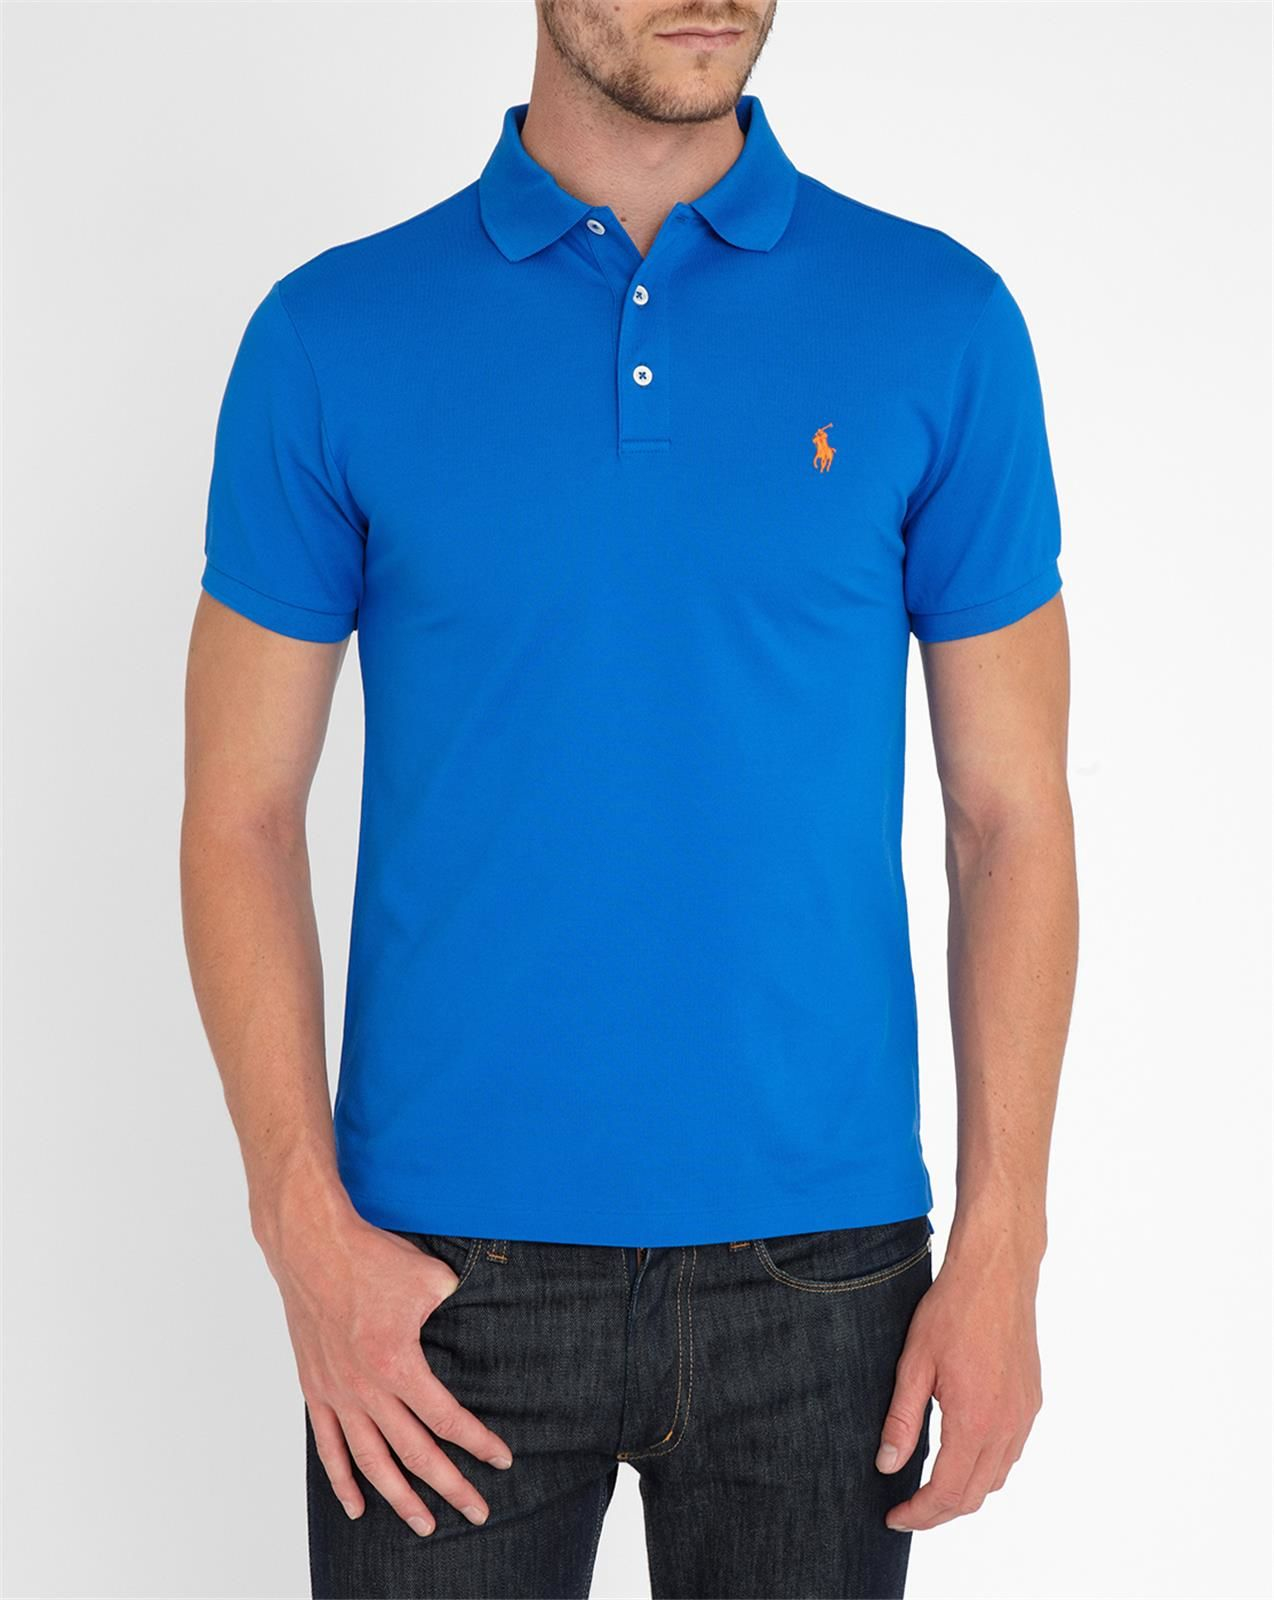 Polo ralph lauren royal blue stretch slim fit polo shirt Man in polo shirt